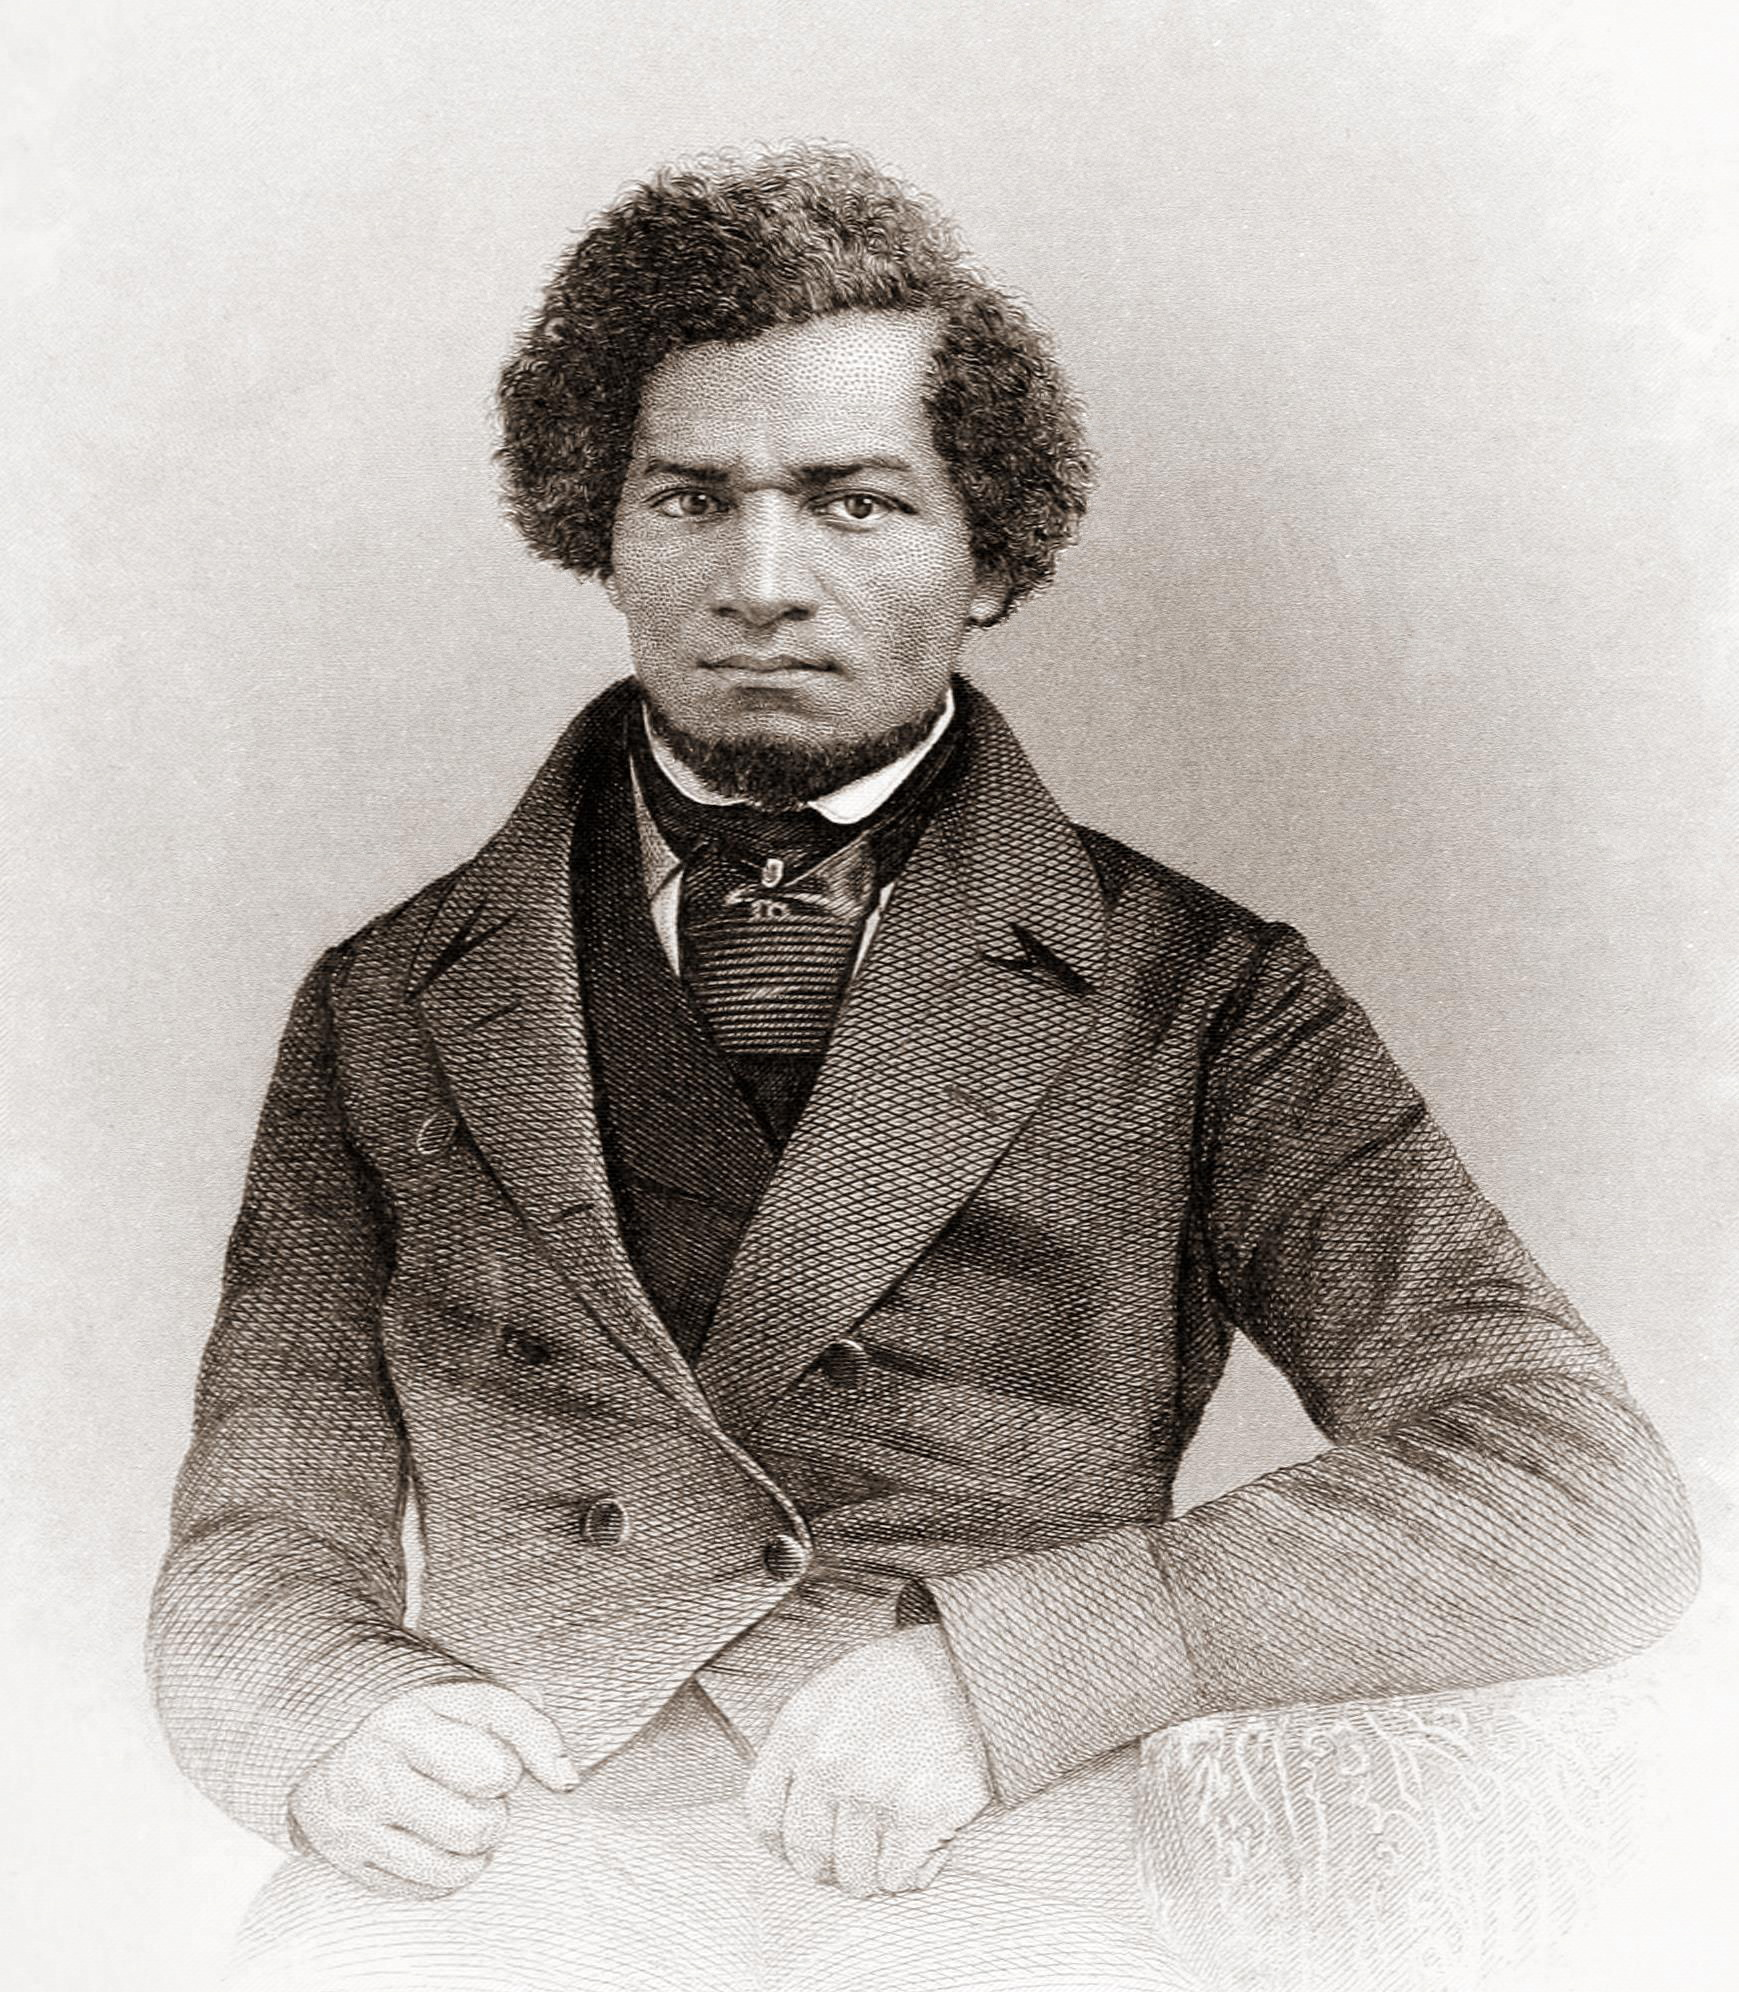 Abolitionist Frederick Douglass spent time as an enslaved child at Wye House in the 1820s.